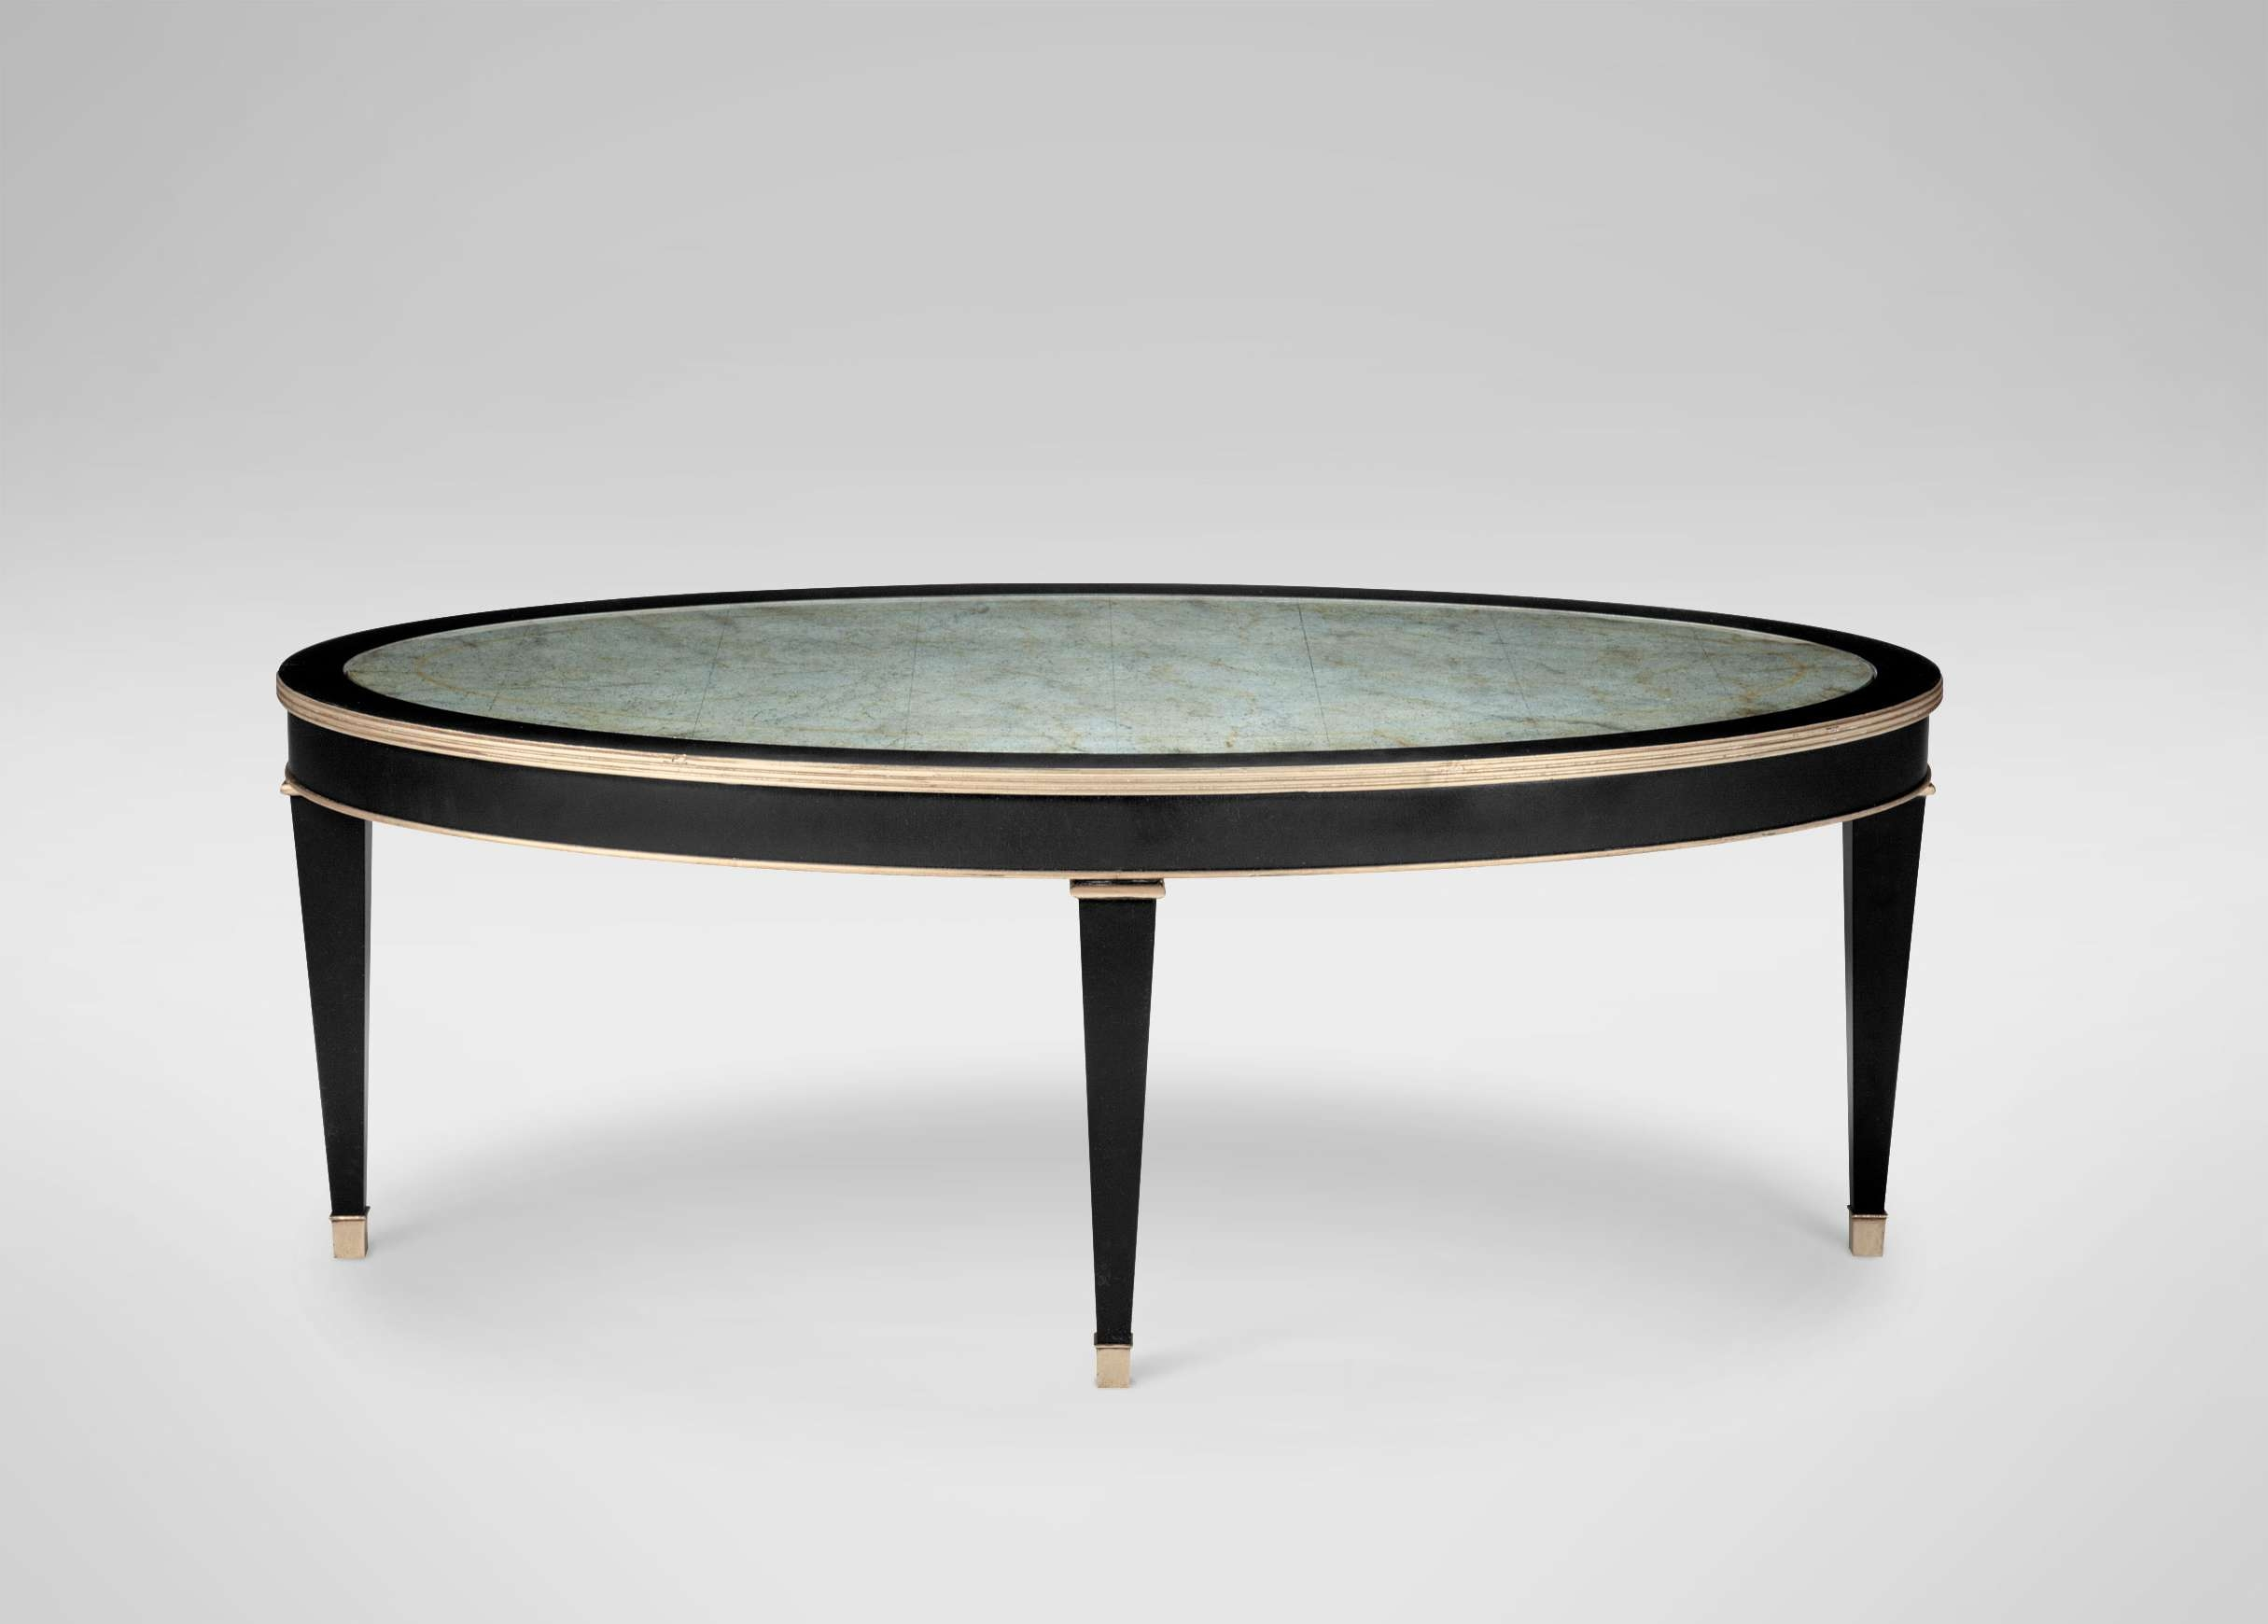 Famous Bronze Coffee Table Glass Top For Coffee Table : Gold Coffee Table Ikea Target Coffee Table Circular (View 8 of 20)